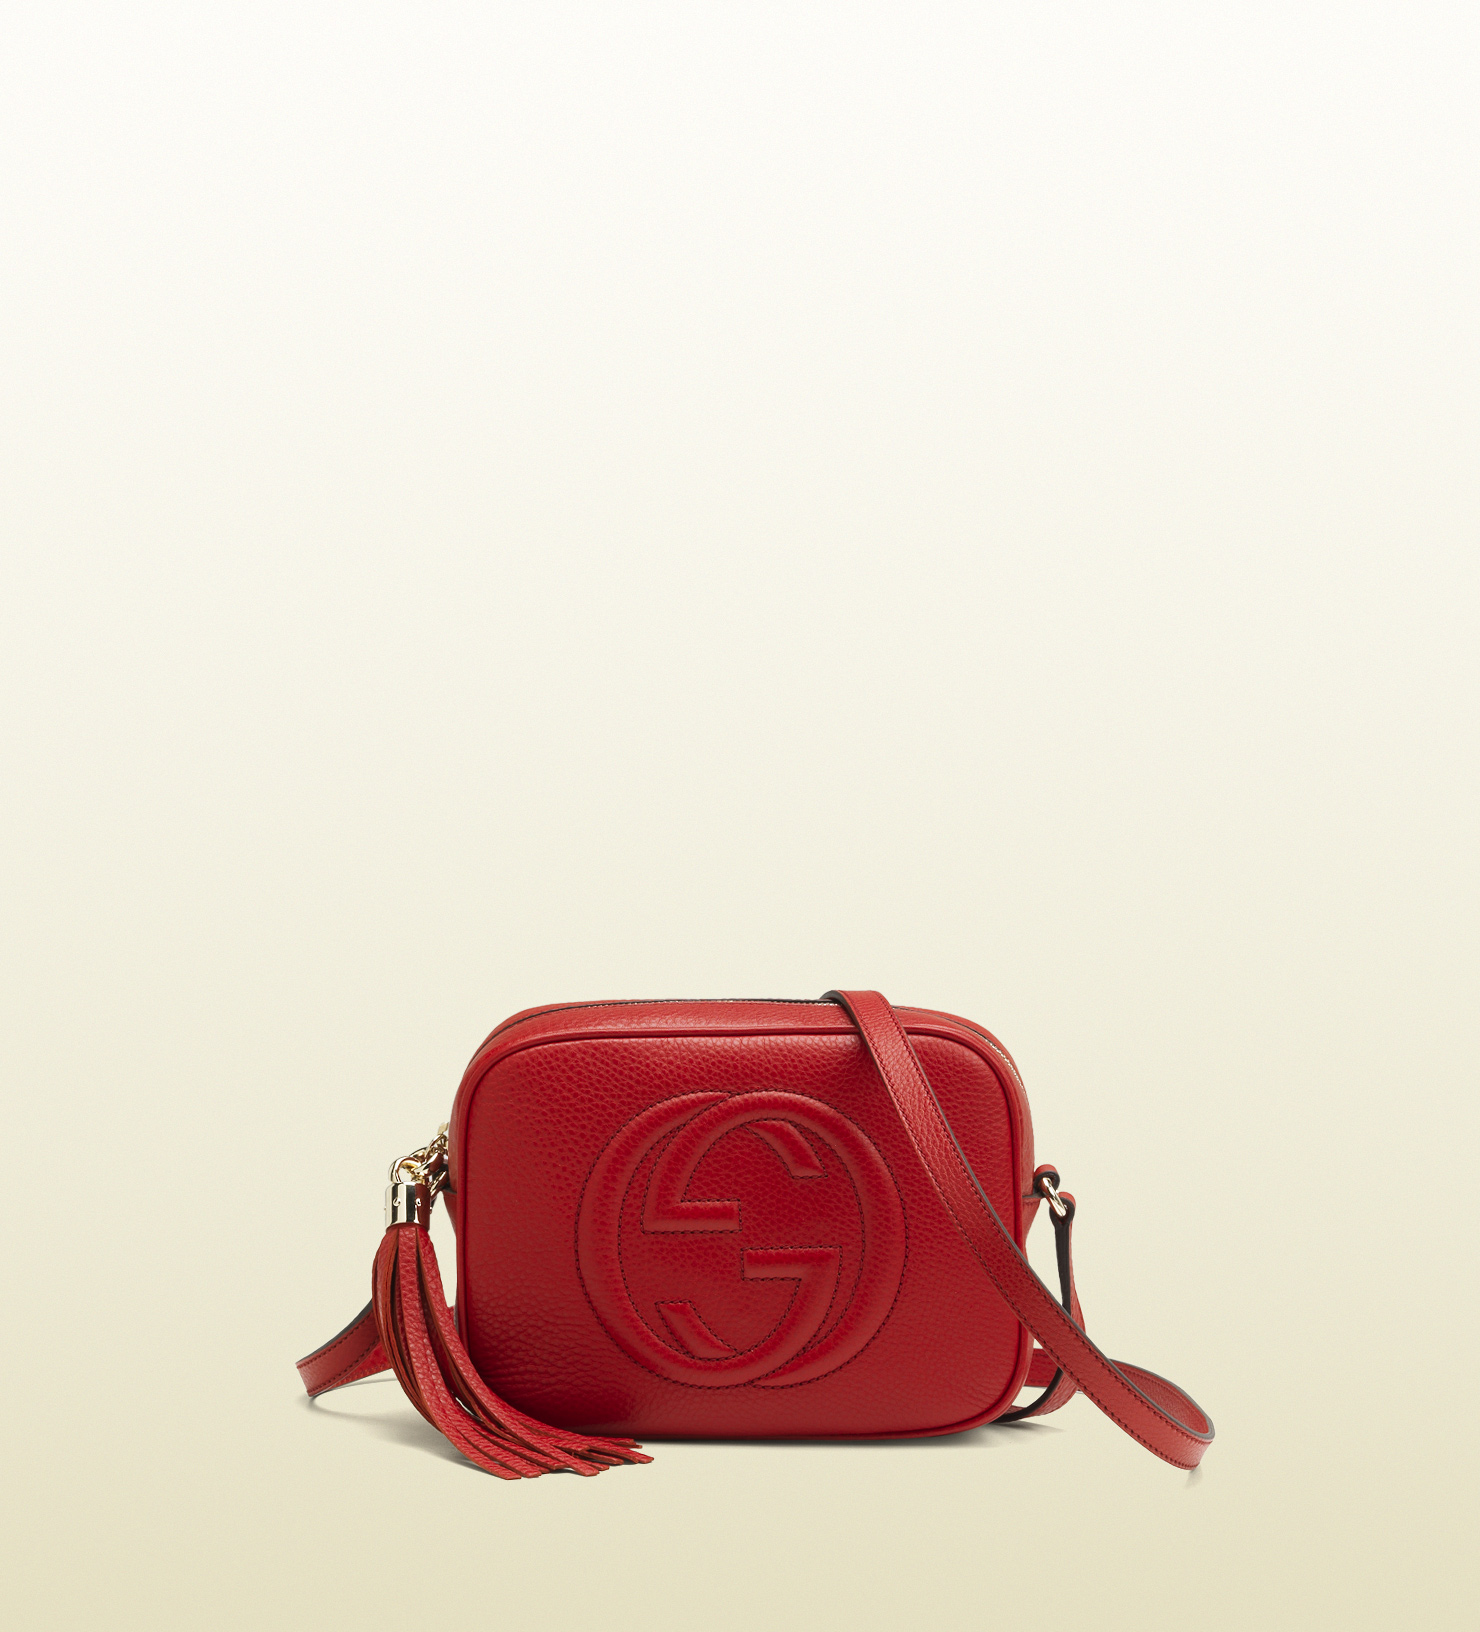 Gucci -  soho disco bag 308364A7M0G6523